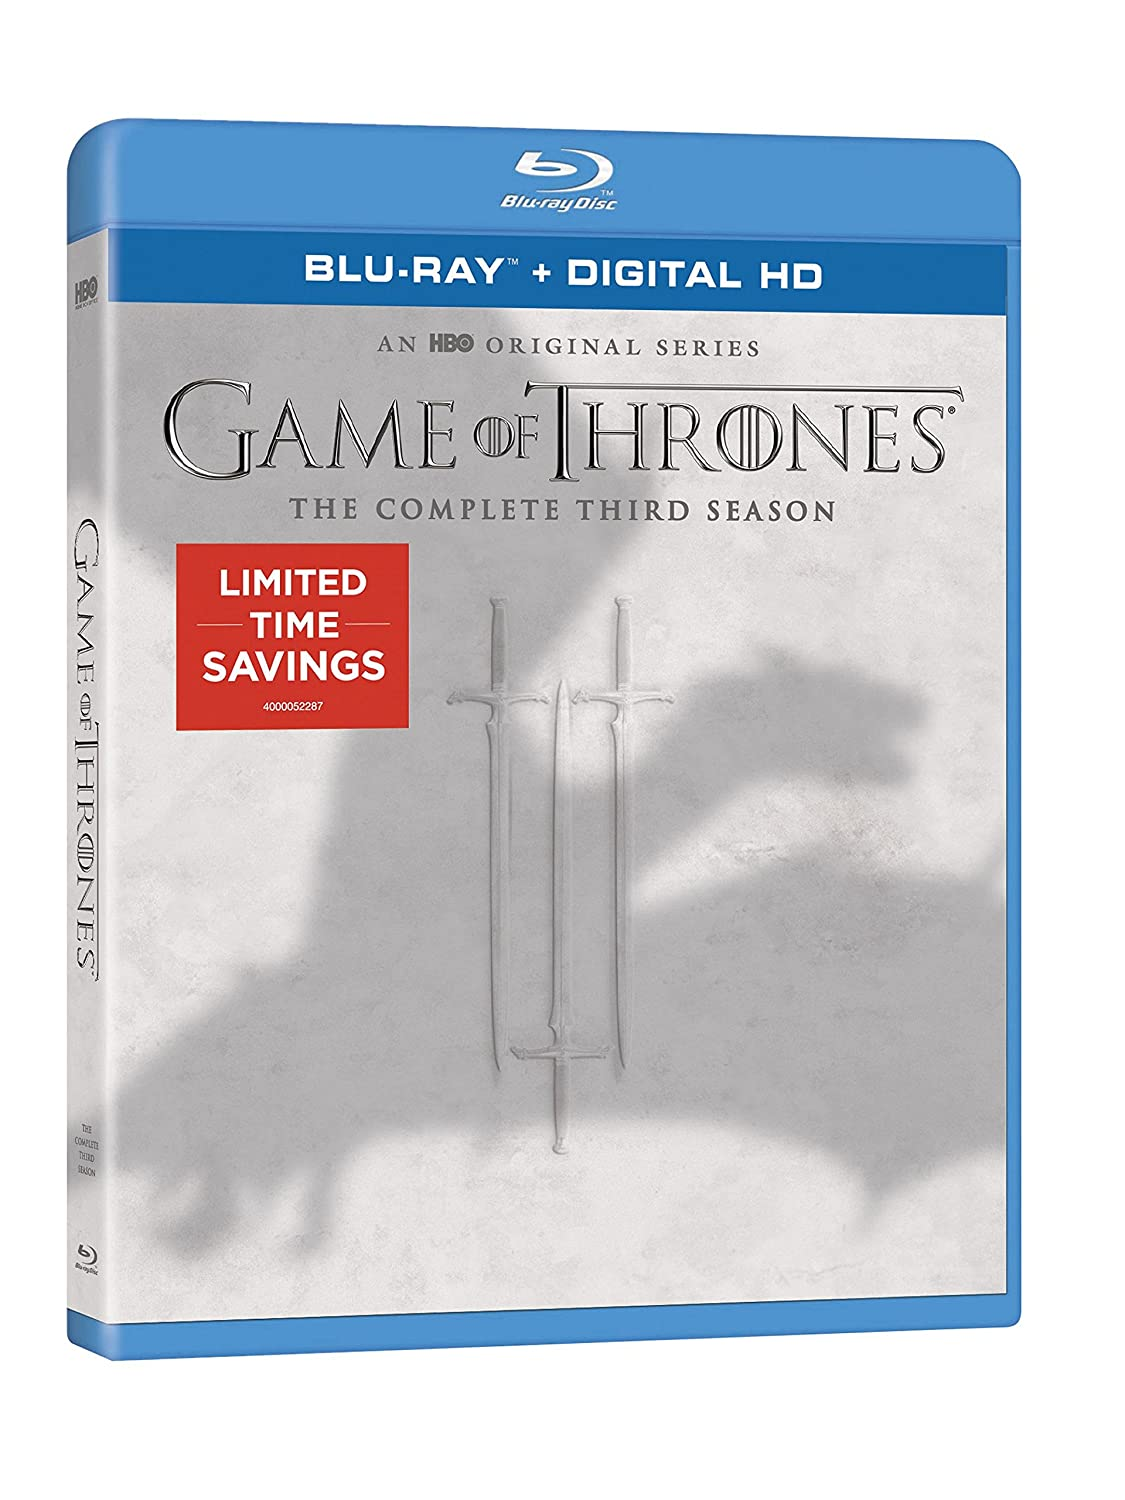 Amazon.com: Game of Thrones: The Complete Third Season (BD ...